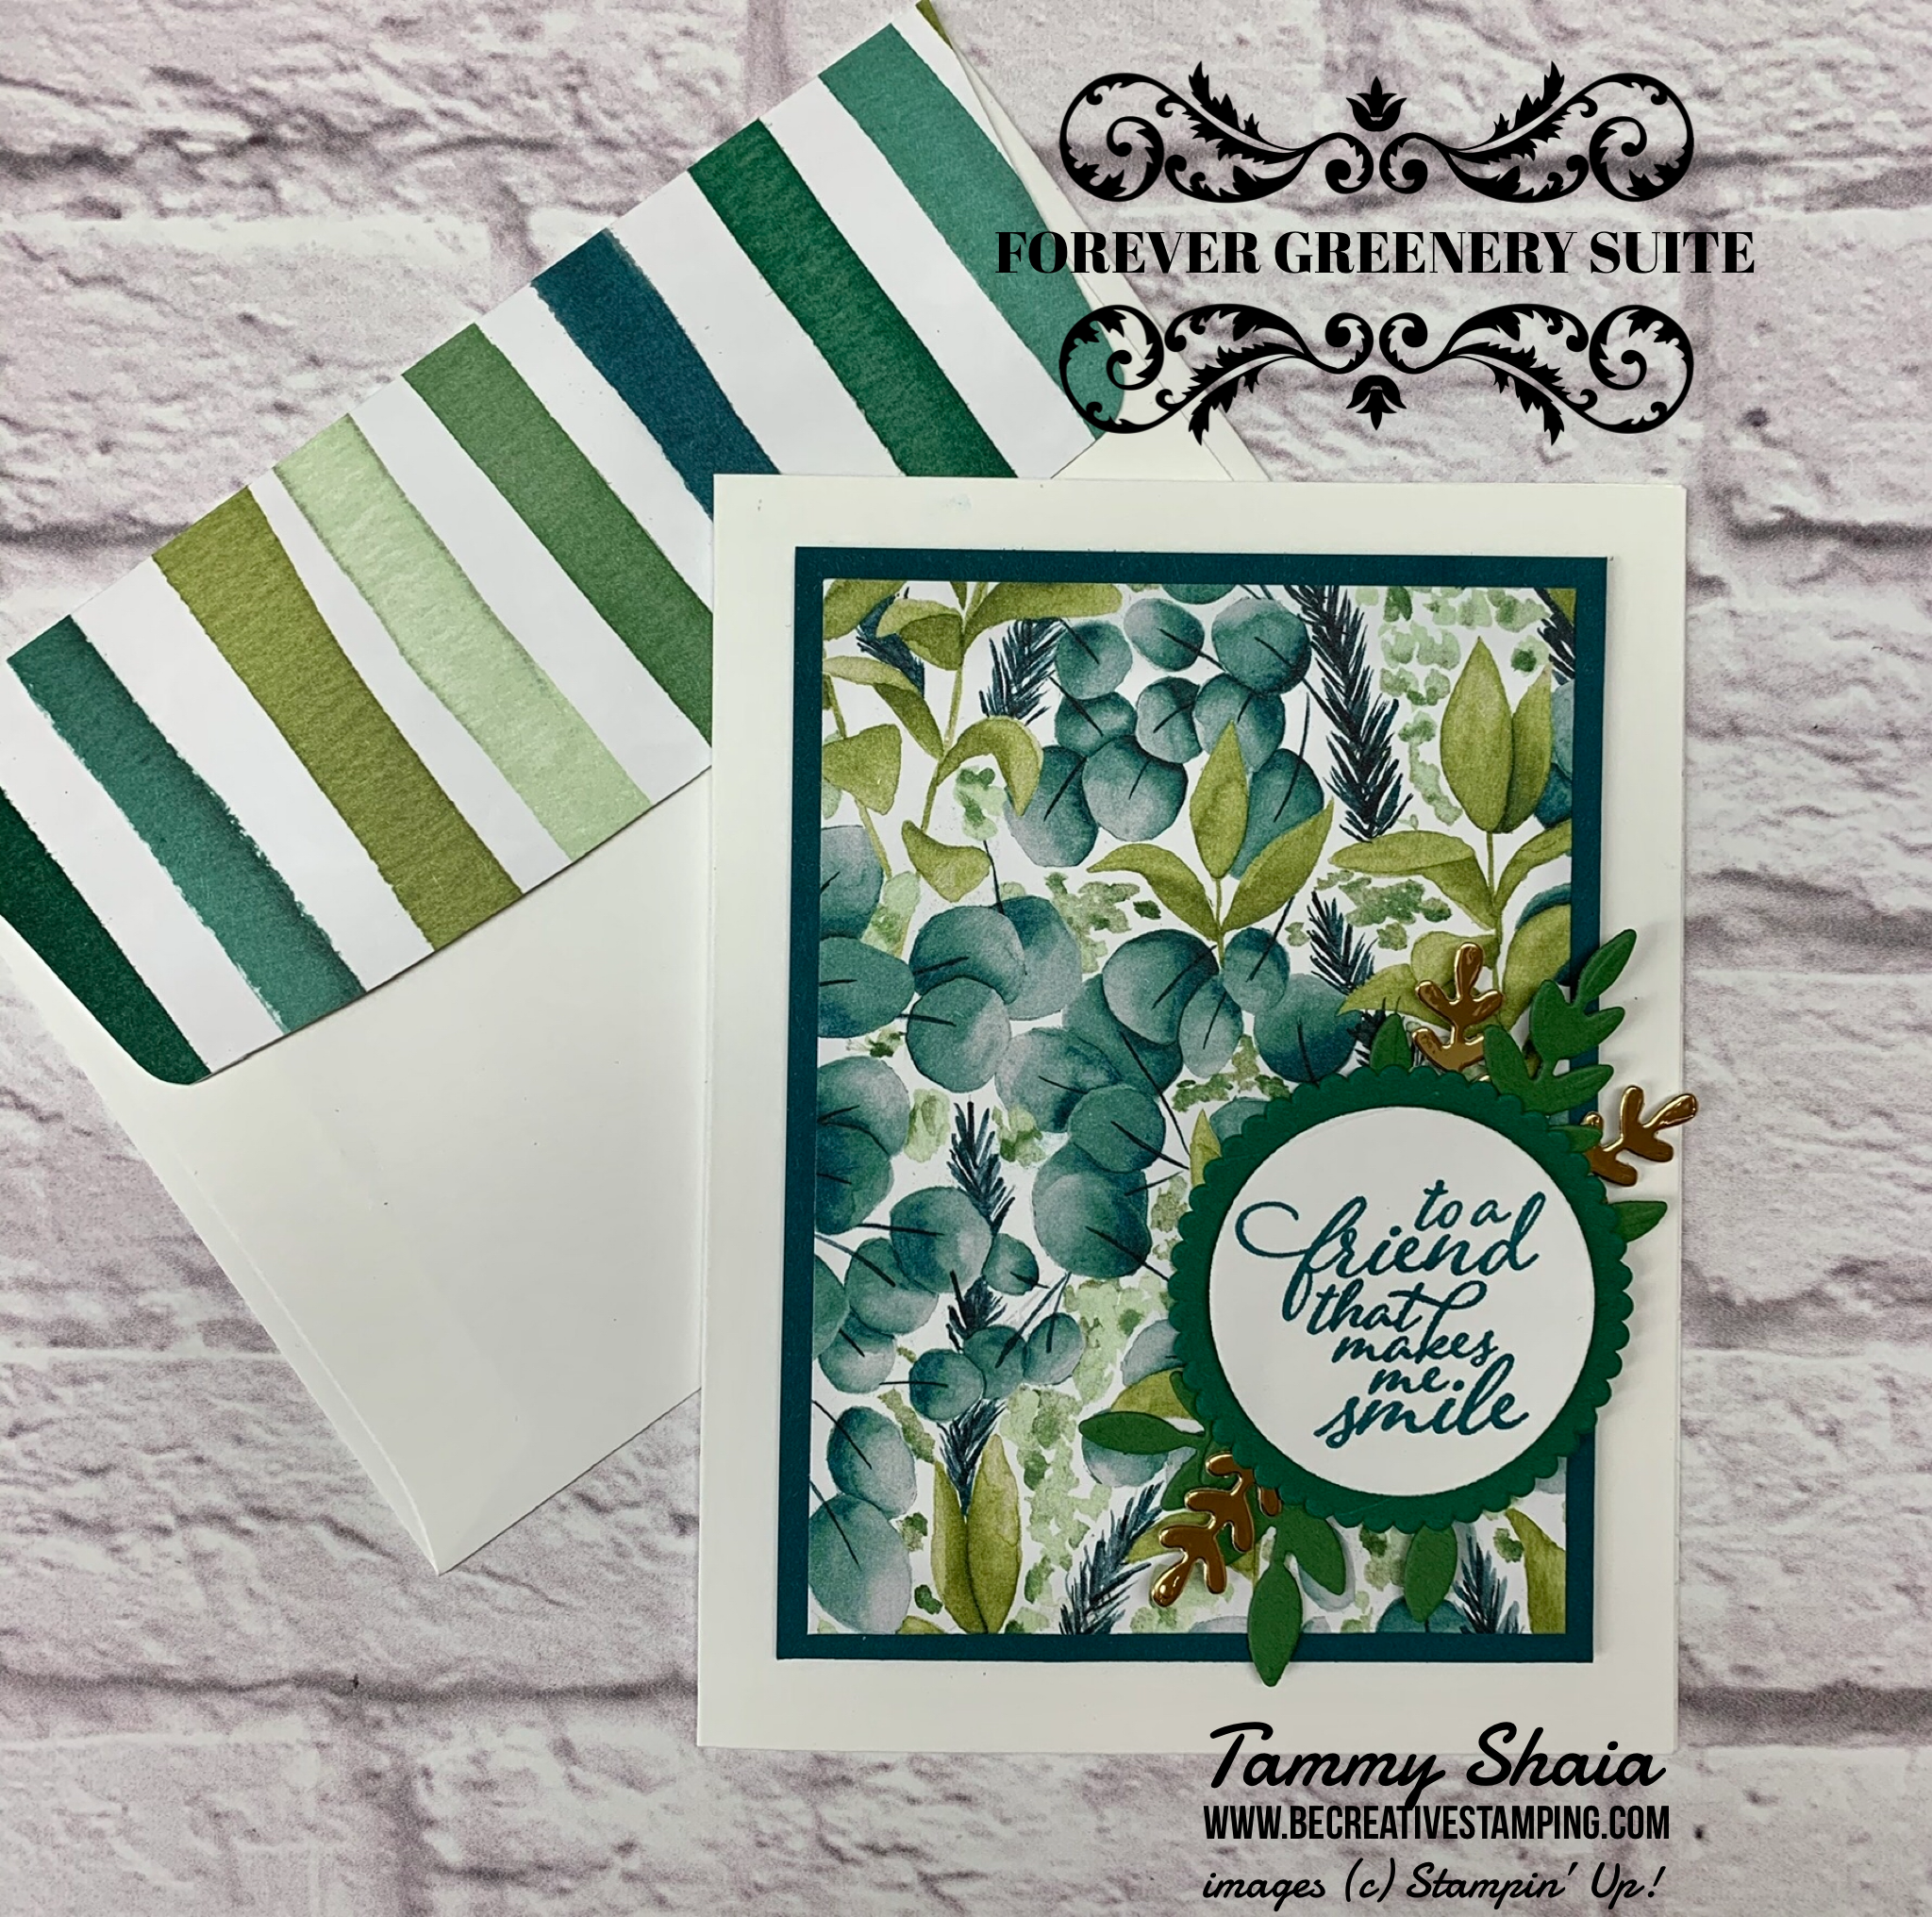 NEW Stampin Up FOREVER GREENERY DSP 12 sheets 6 x 6 Designer Series Paper